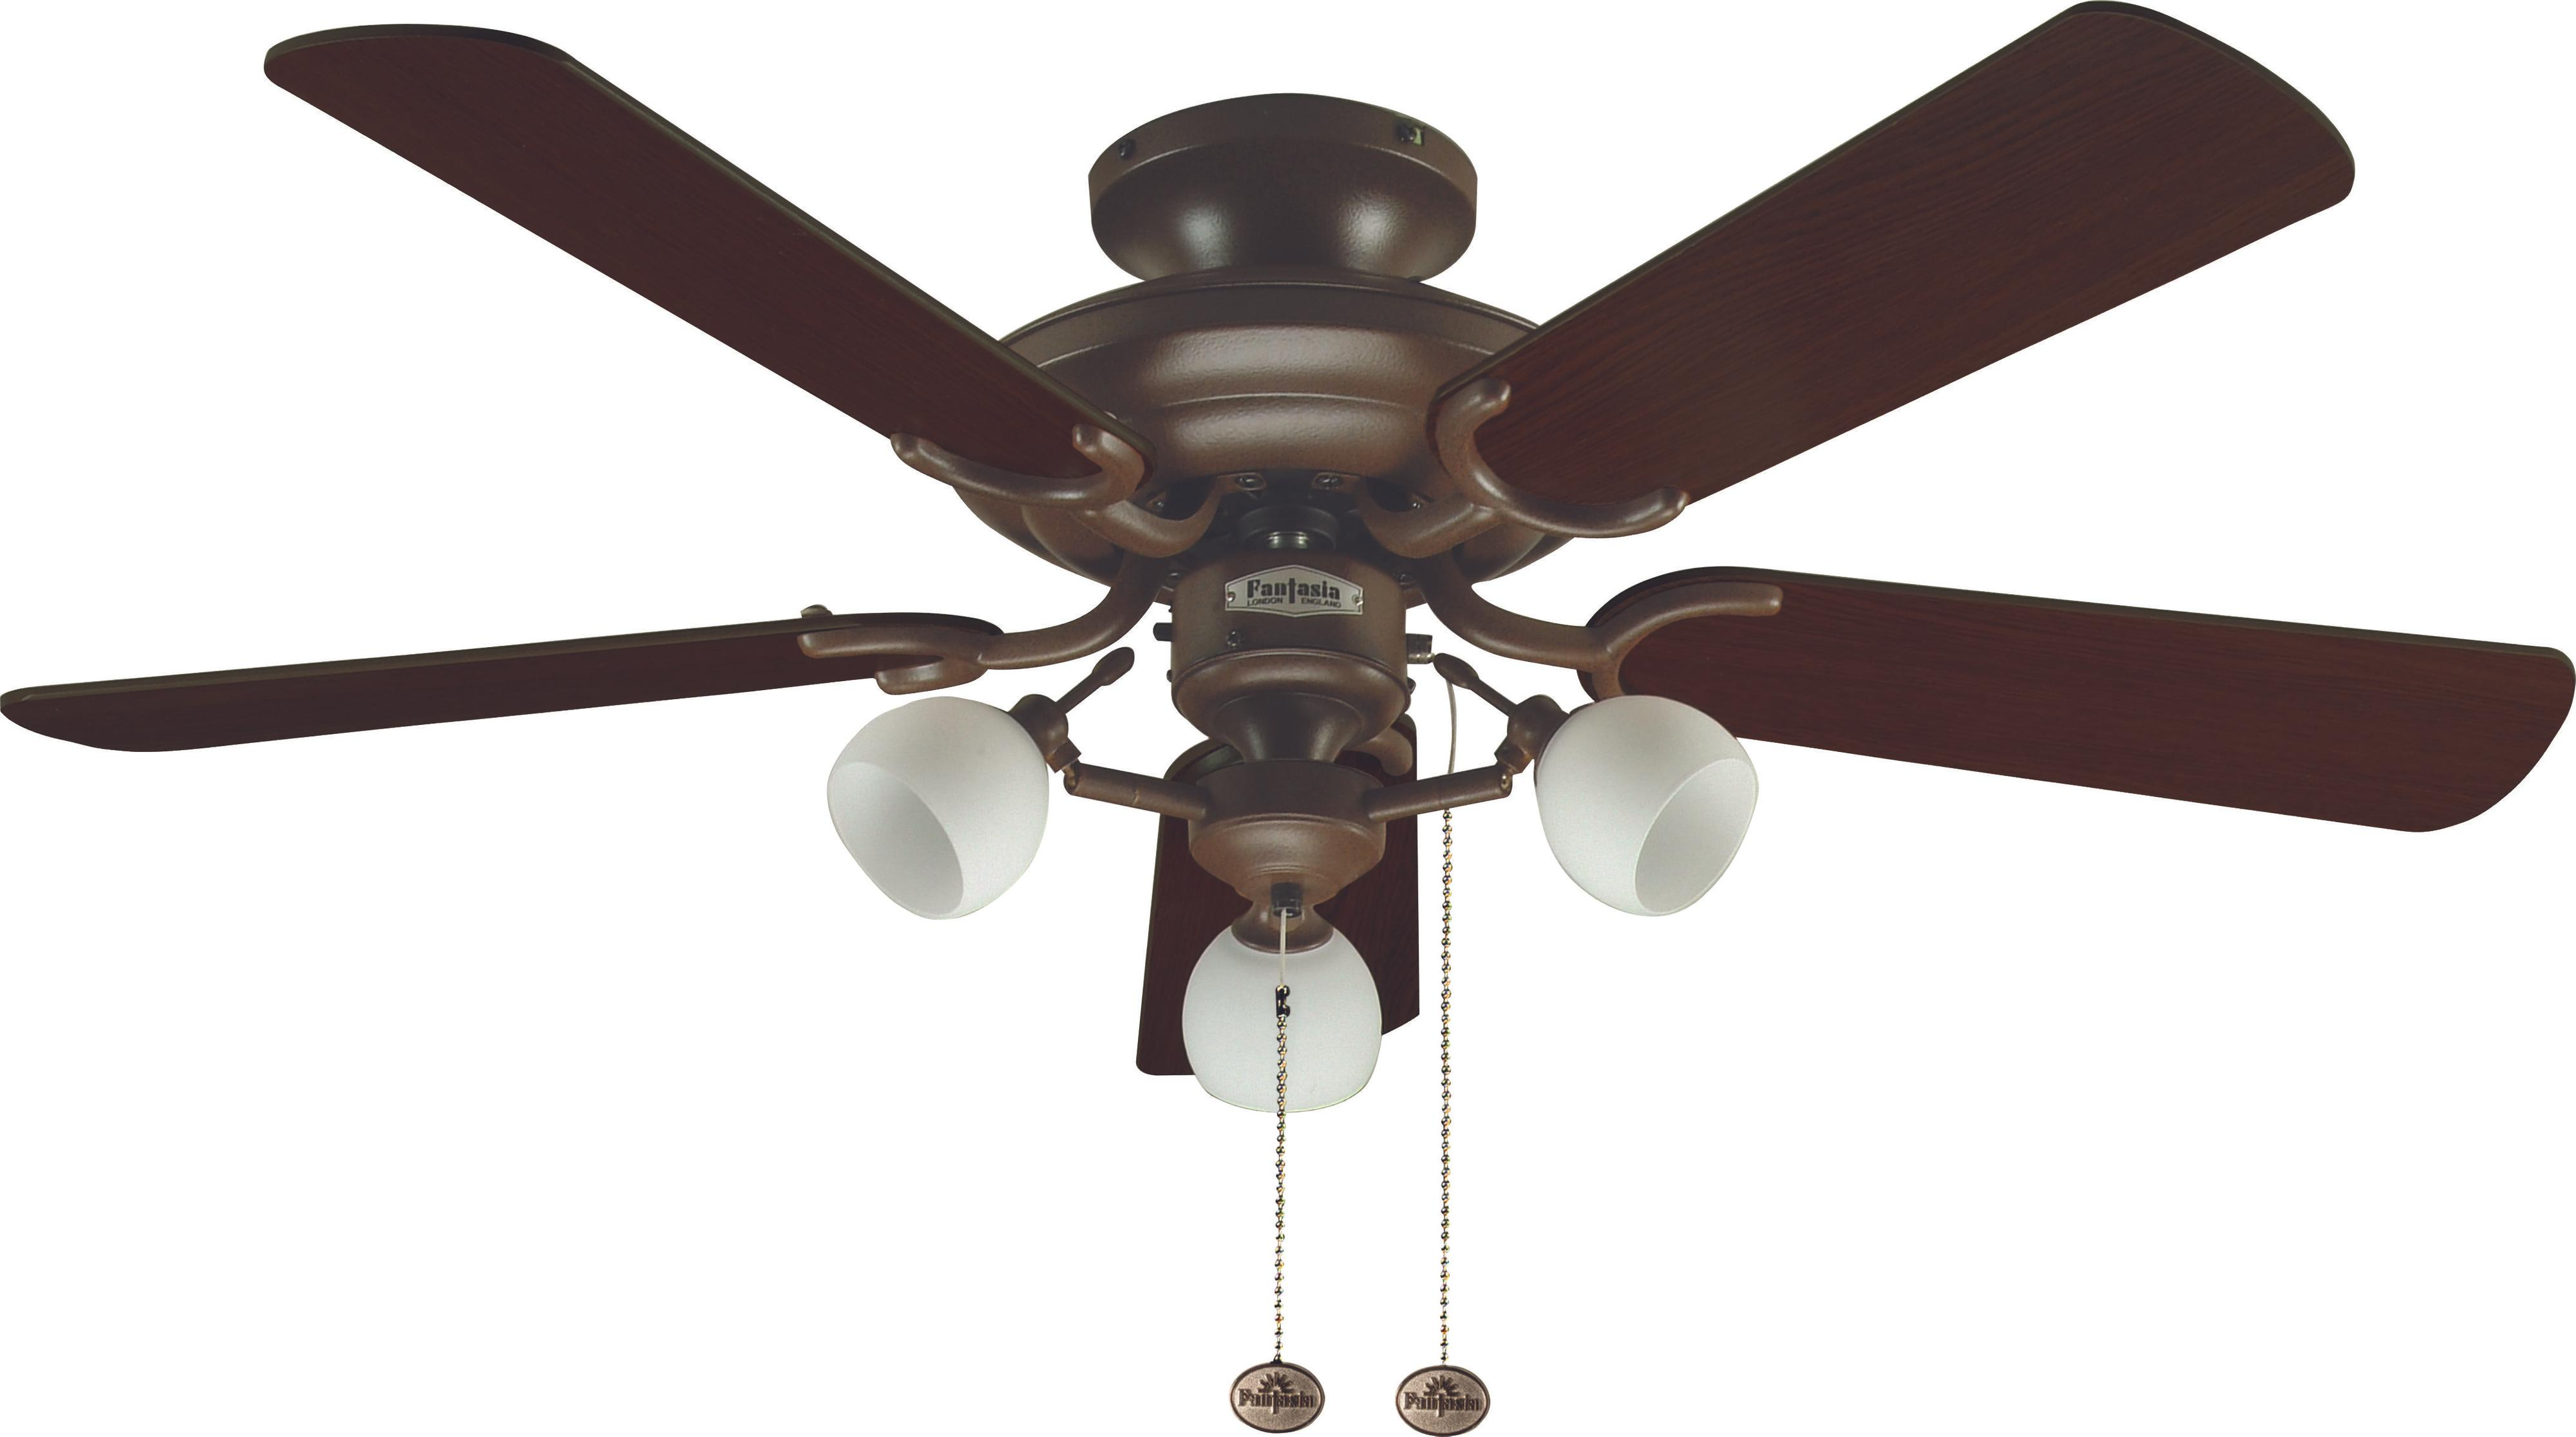 Ceiling Fan Mayfair Combi Brown With Light 107cm 42